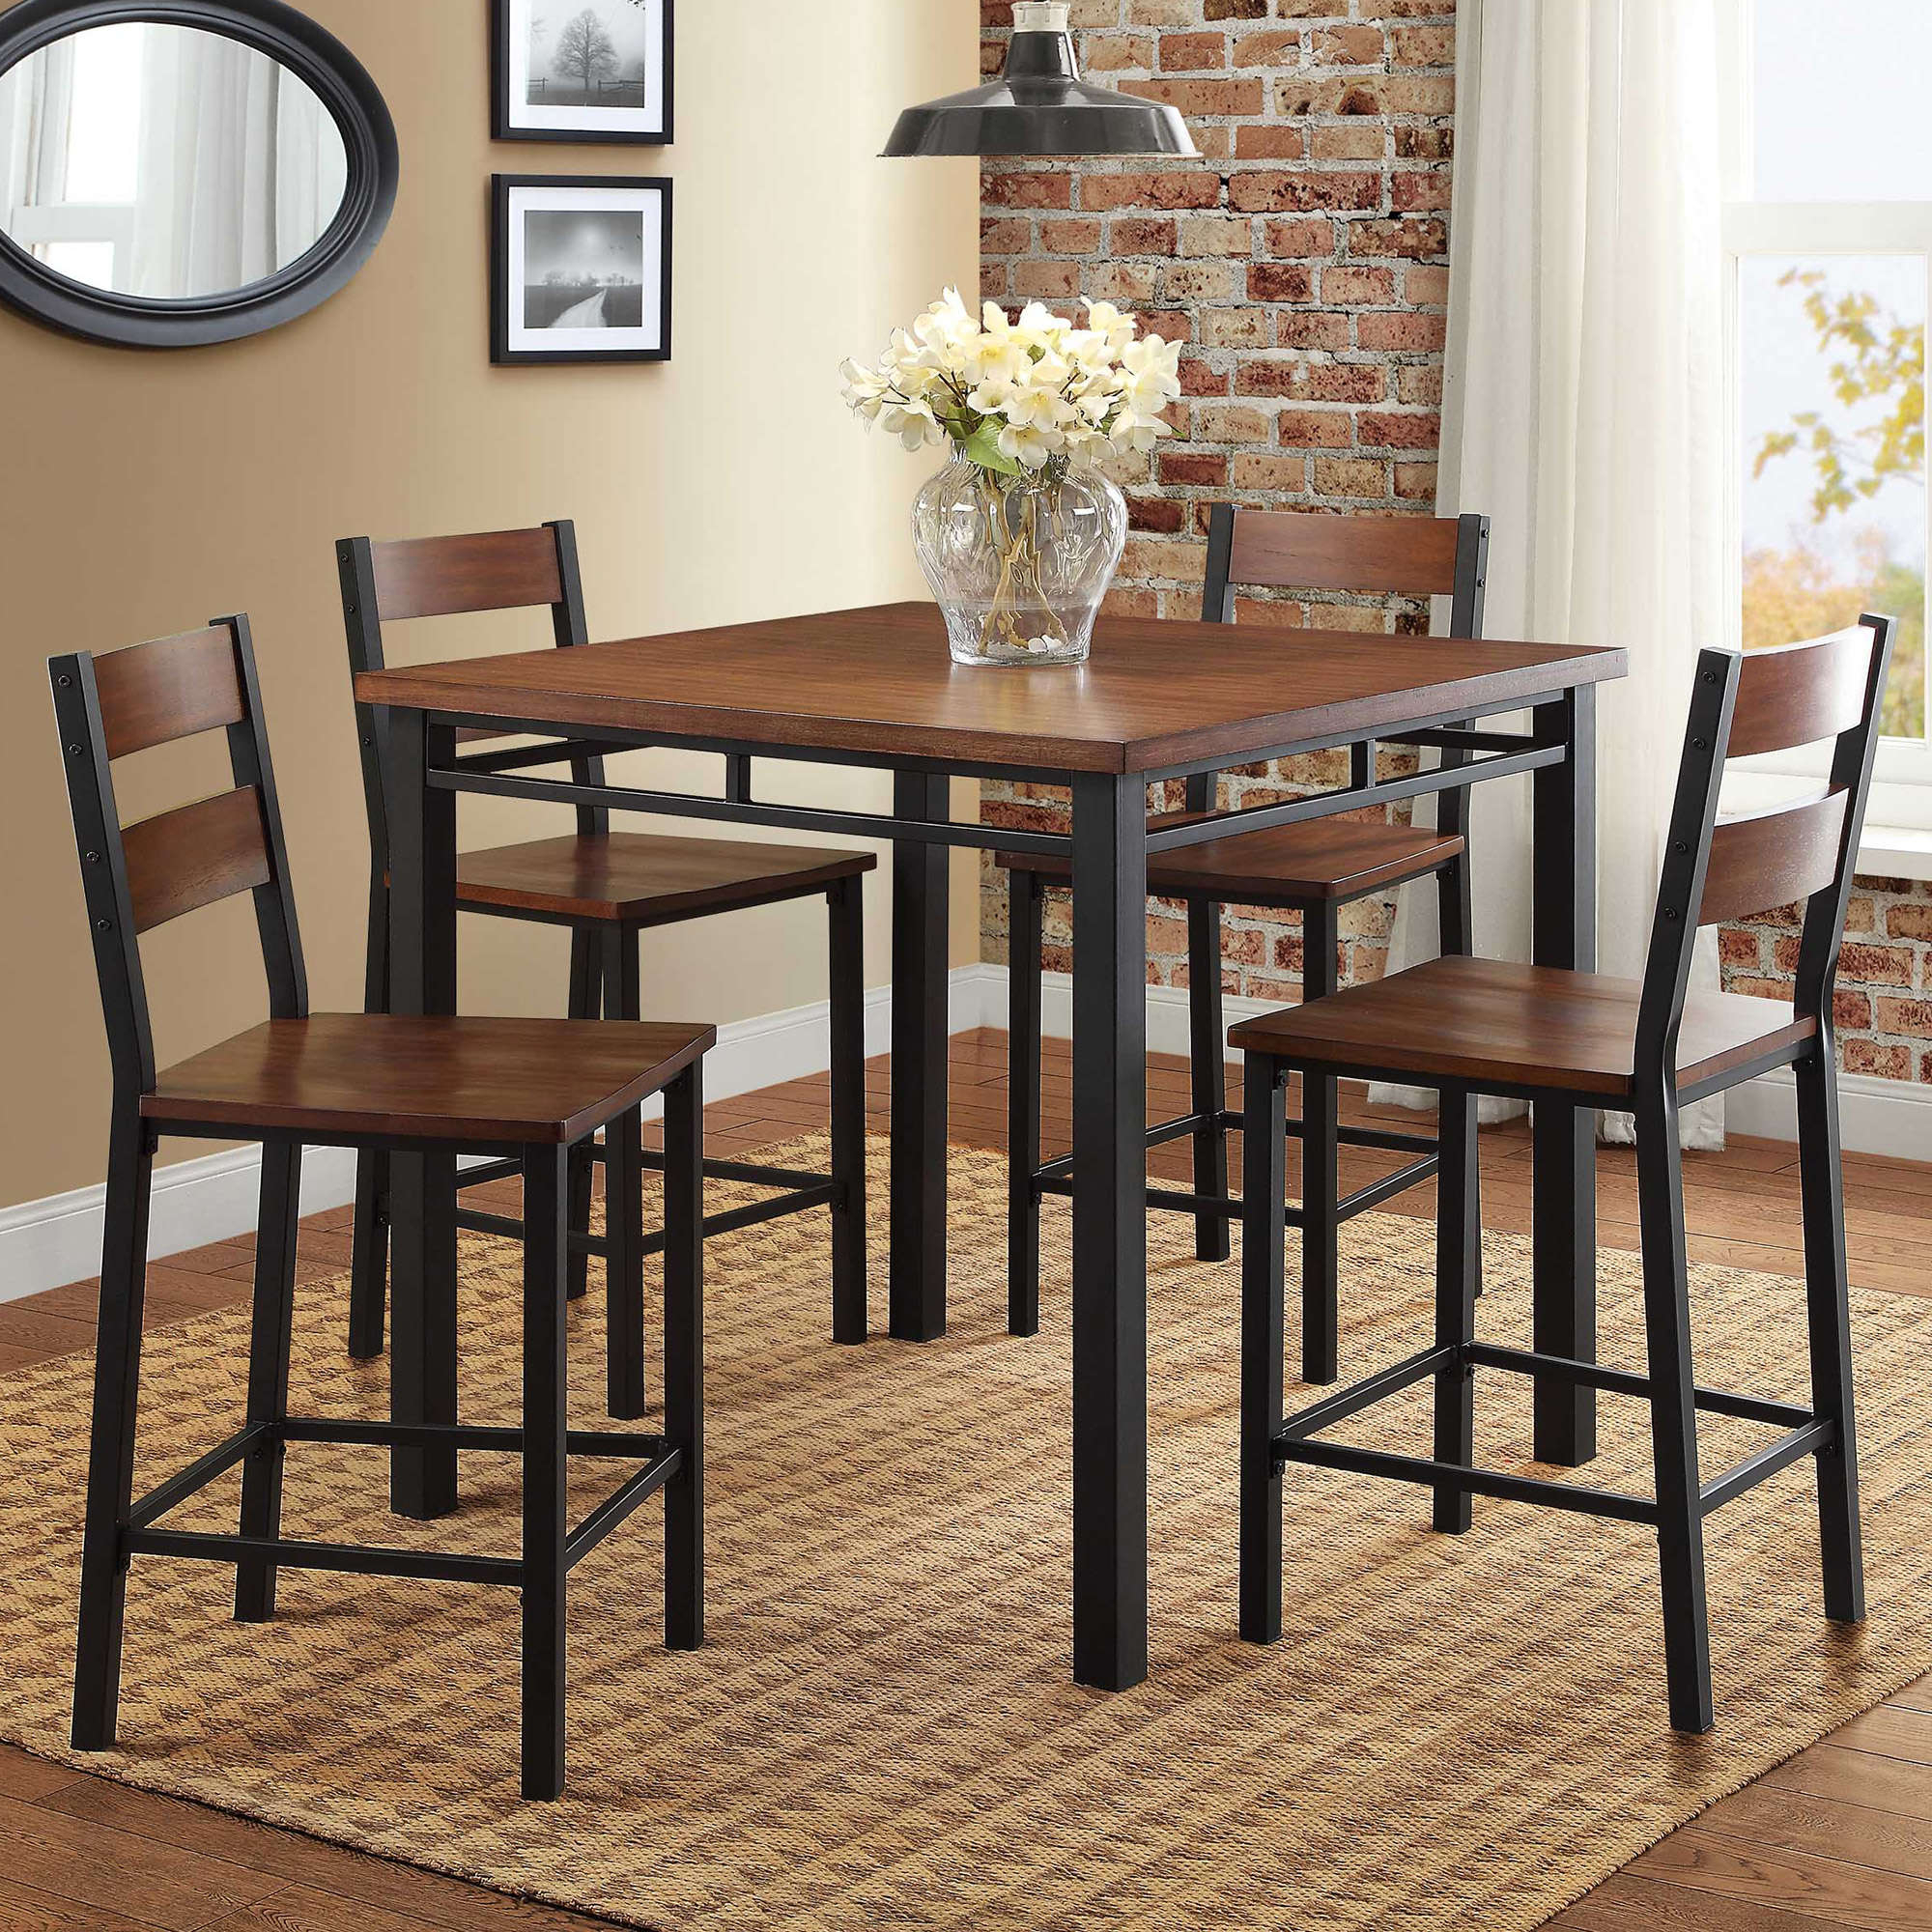 Preferred Rustic Dining Table Set High Top Counter Height Chair Kitchen Nook 5 In 5 Piece Breakfast Nook Dining Sets (#16 of 20)